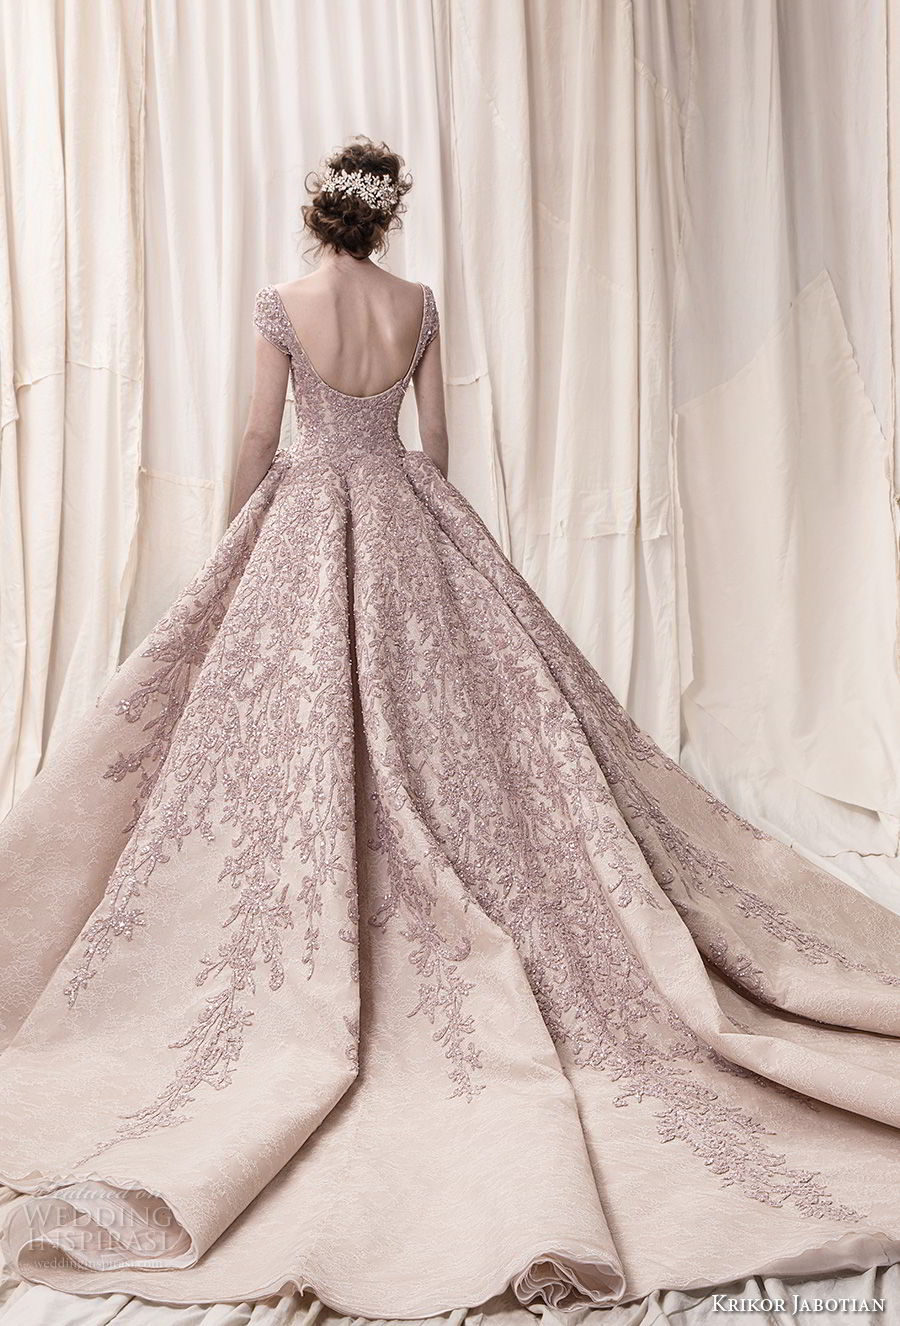 krikor jabotian spring 2018 bridal cap sleeves scoop neckline heavily embeliished blush color glamorous princess ball gown a  line wedding dress open scoop back royal train (08) bv